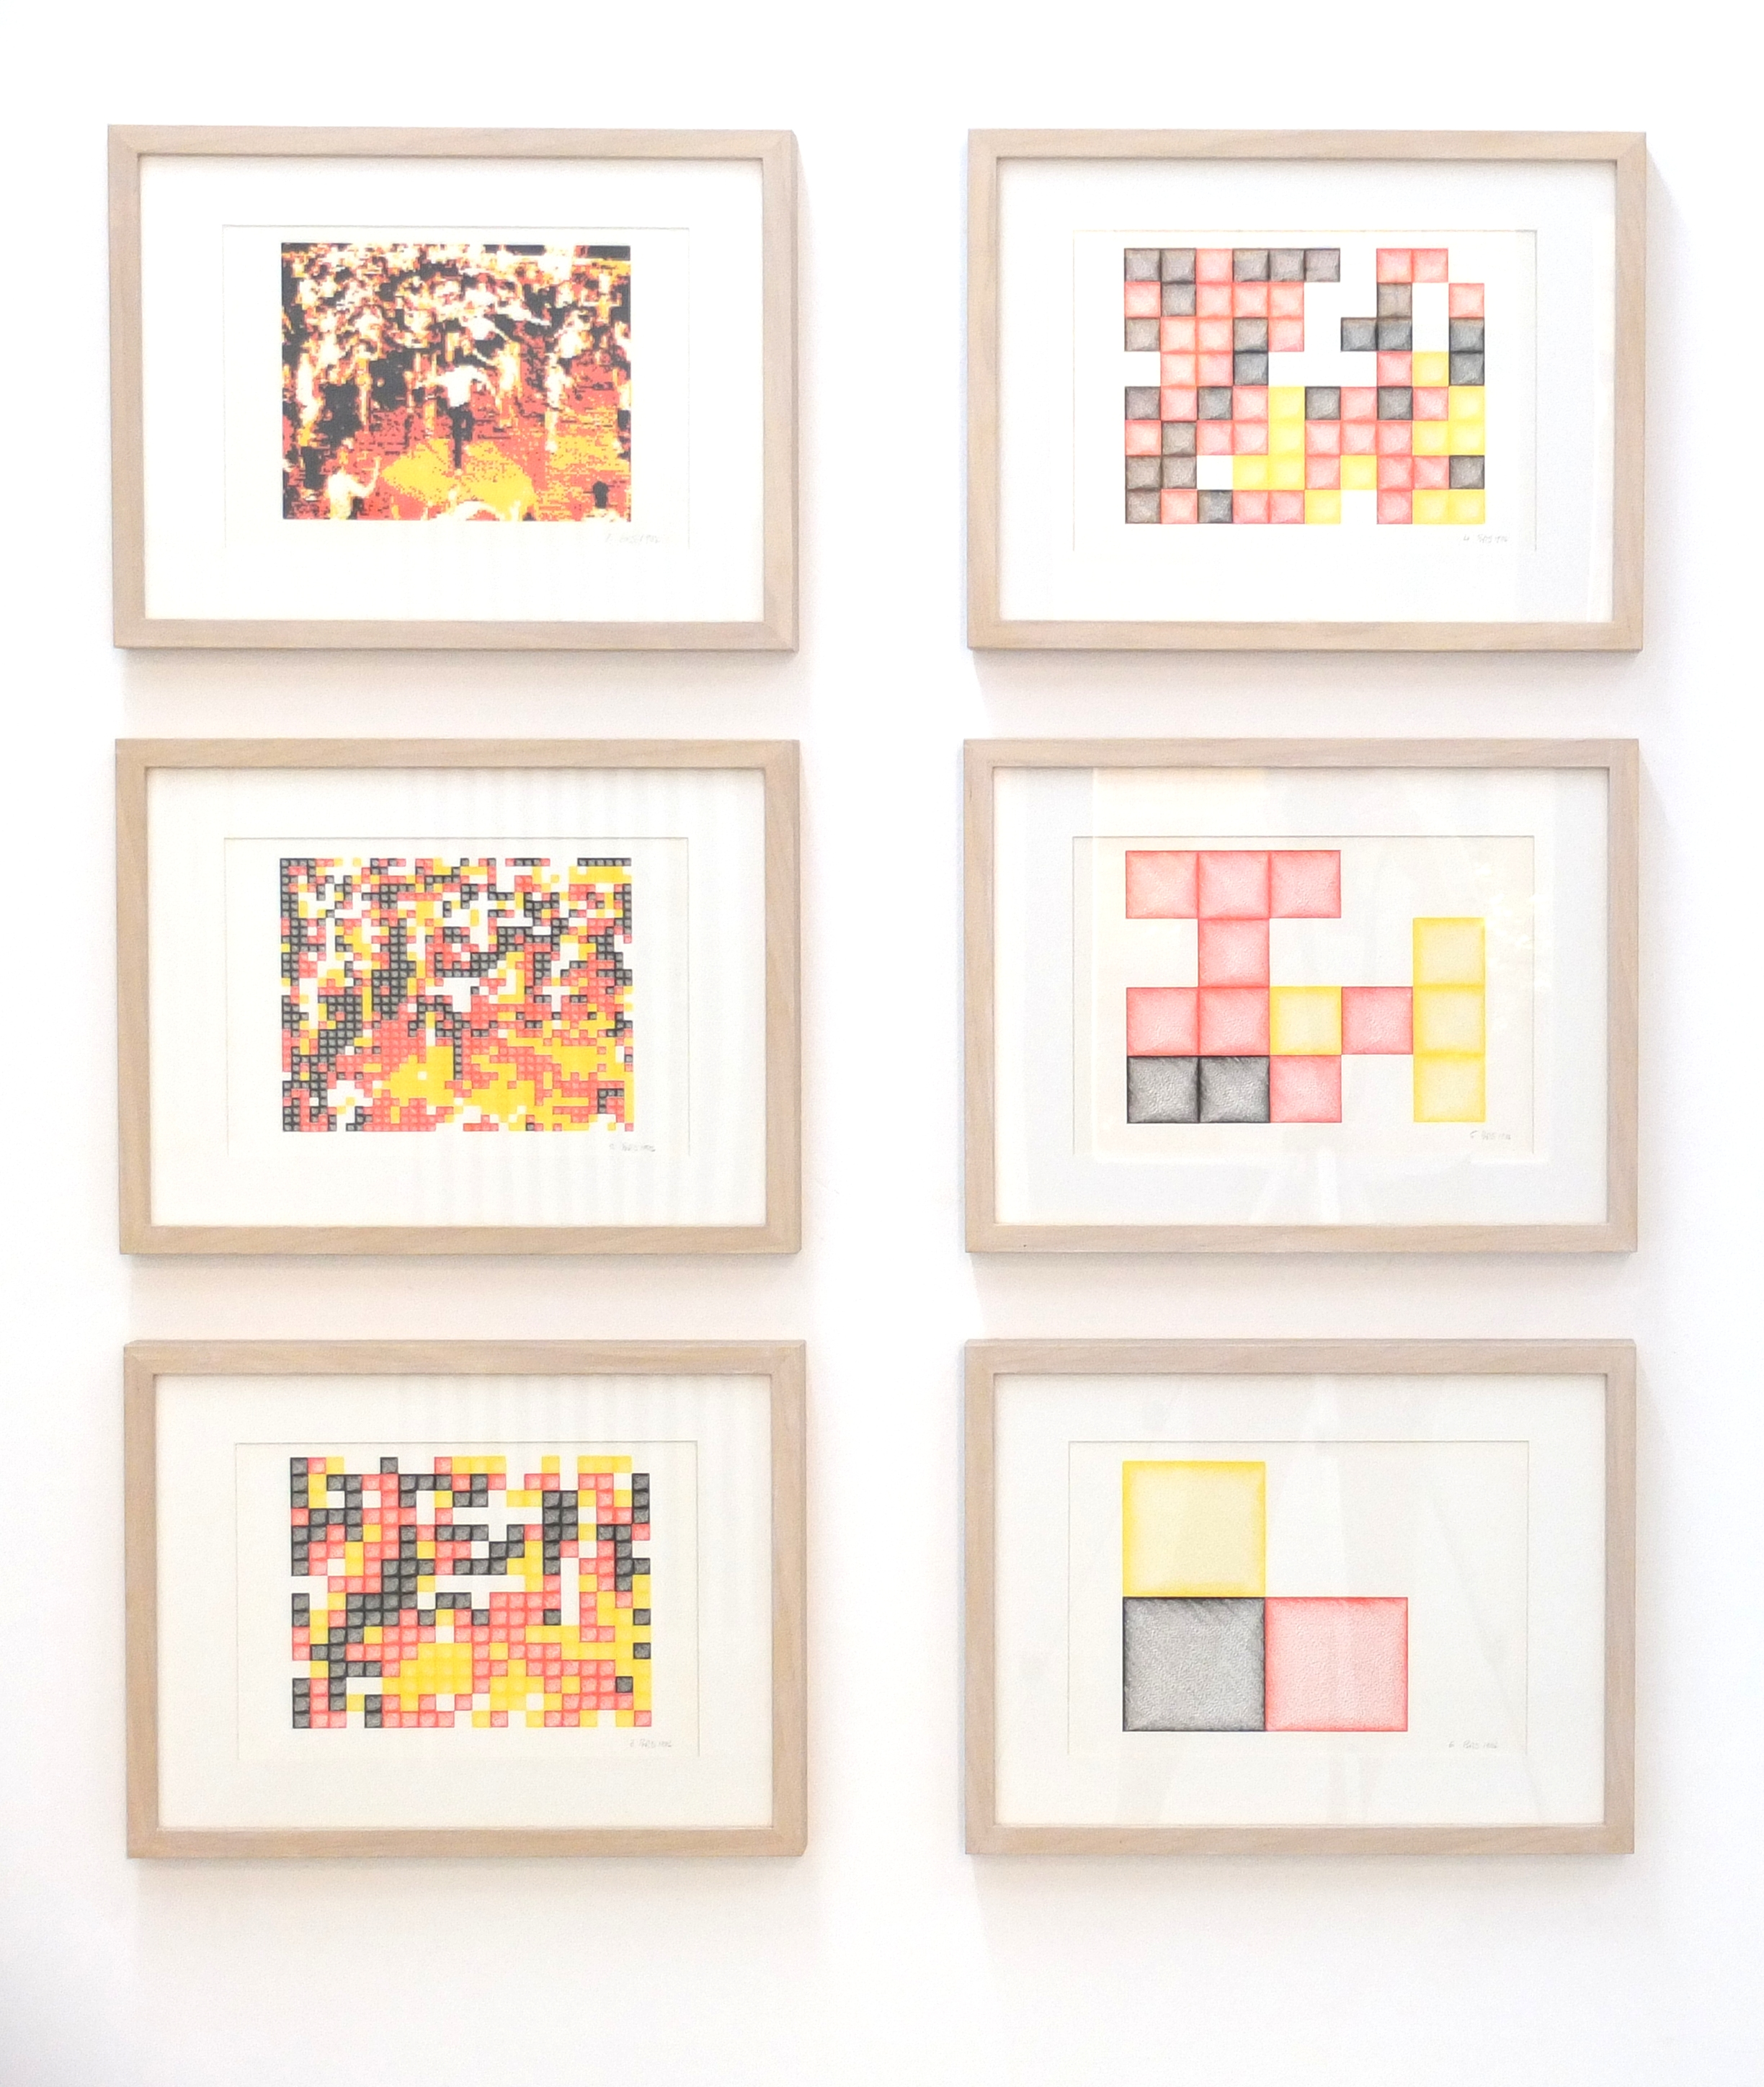 Brian Reffin Smith, From West to East, 6 plotter drawings, 21 cm x 30 cm each, 1988